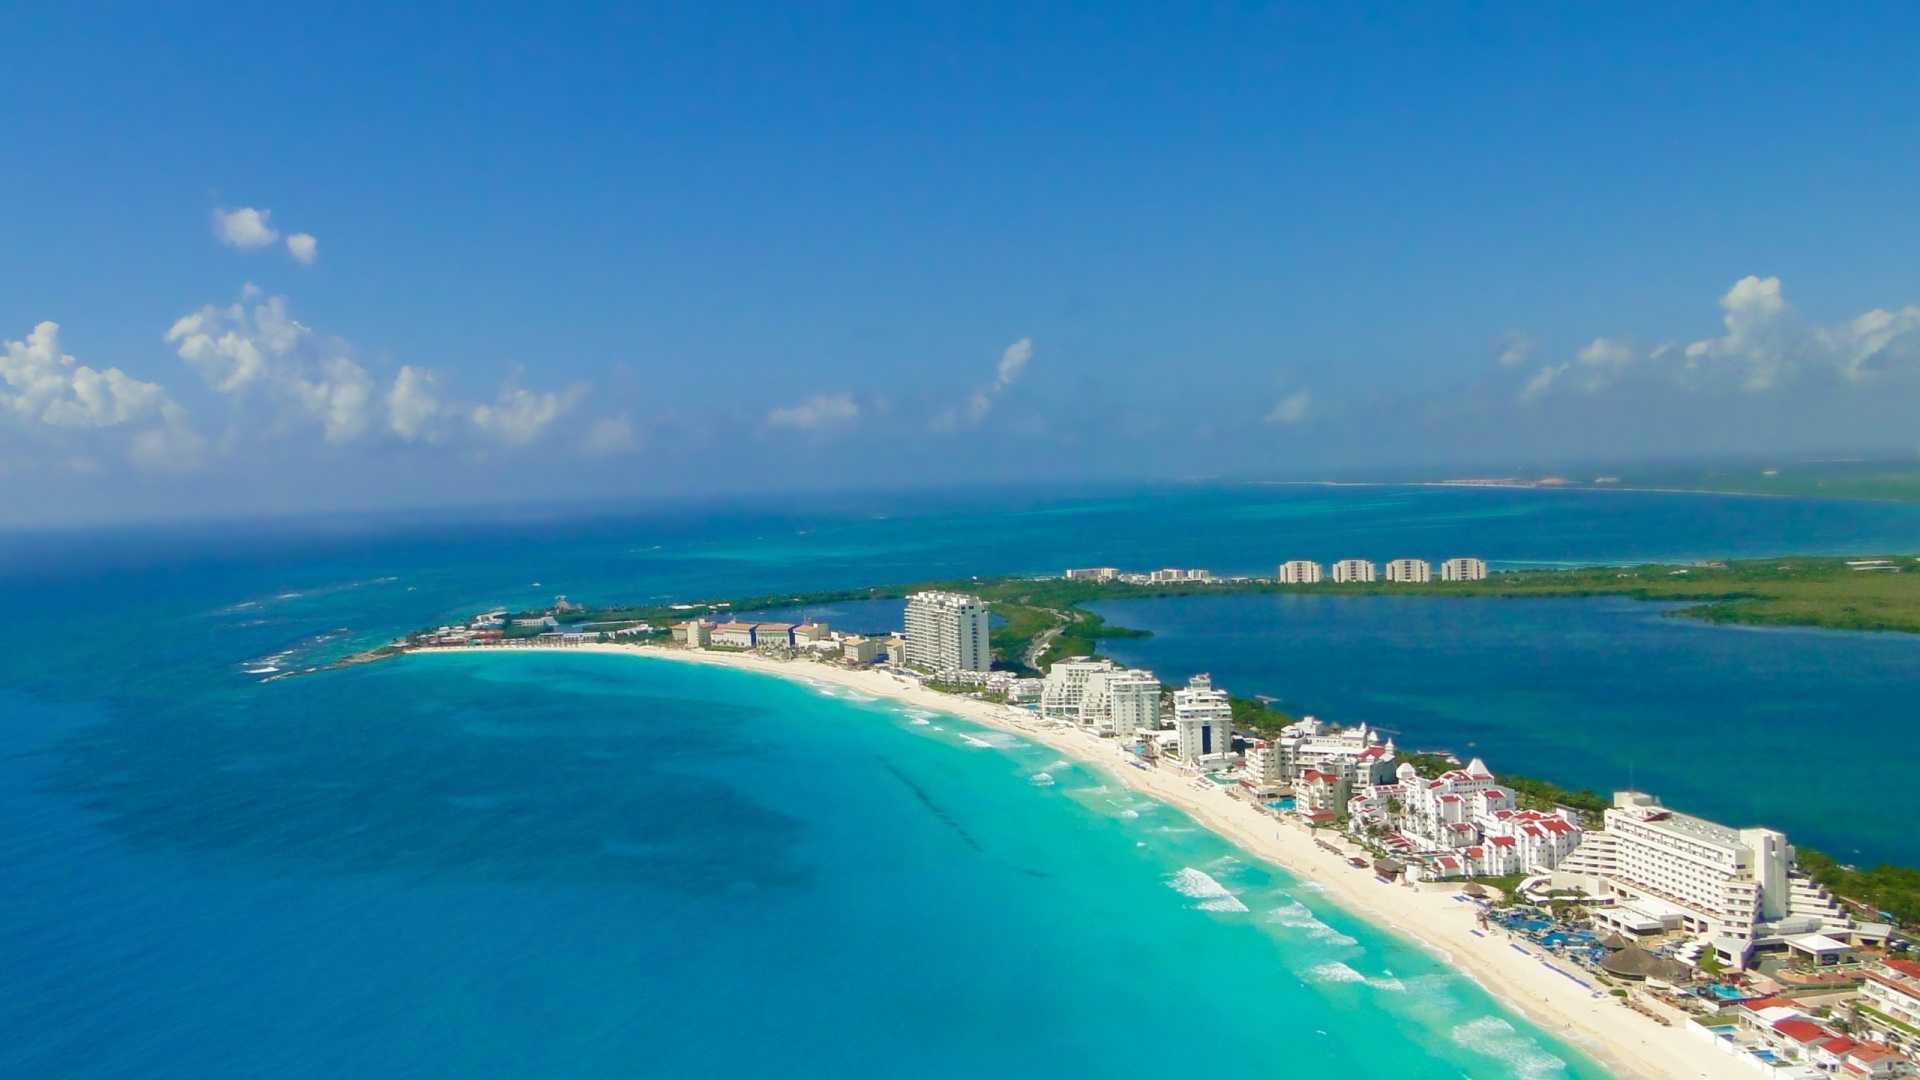 How to Relax and Unwind in Cancun